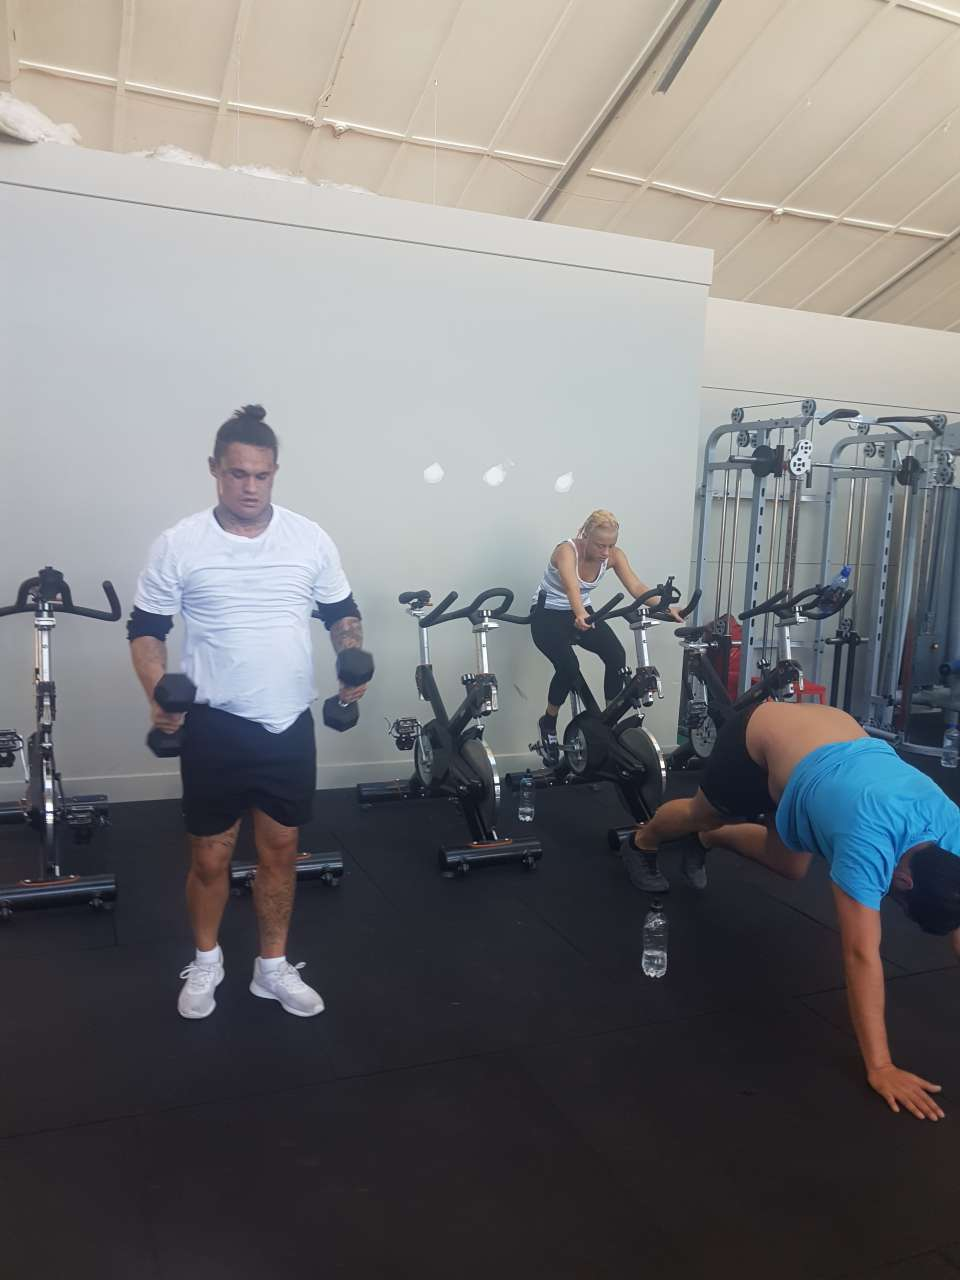 I can not believe the progress these guys have made from when they first began! Honestly its awesome to see. I remeber when 3 squats was the limit for some now theyre reaching into the 50s!!!!! Good attitudes all round and mihi to you Kaku for getting in there amingst it and giving 100%!